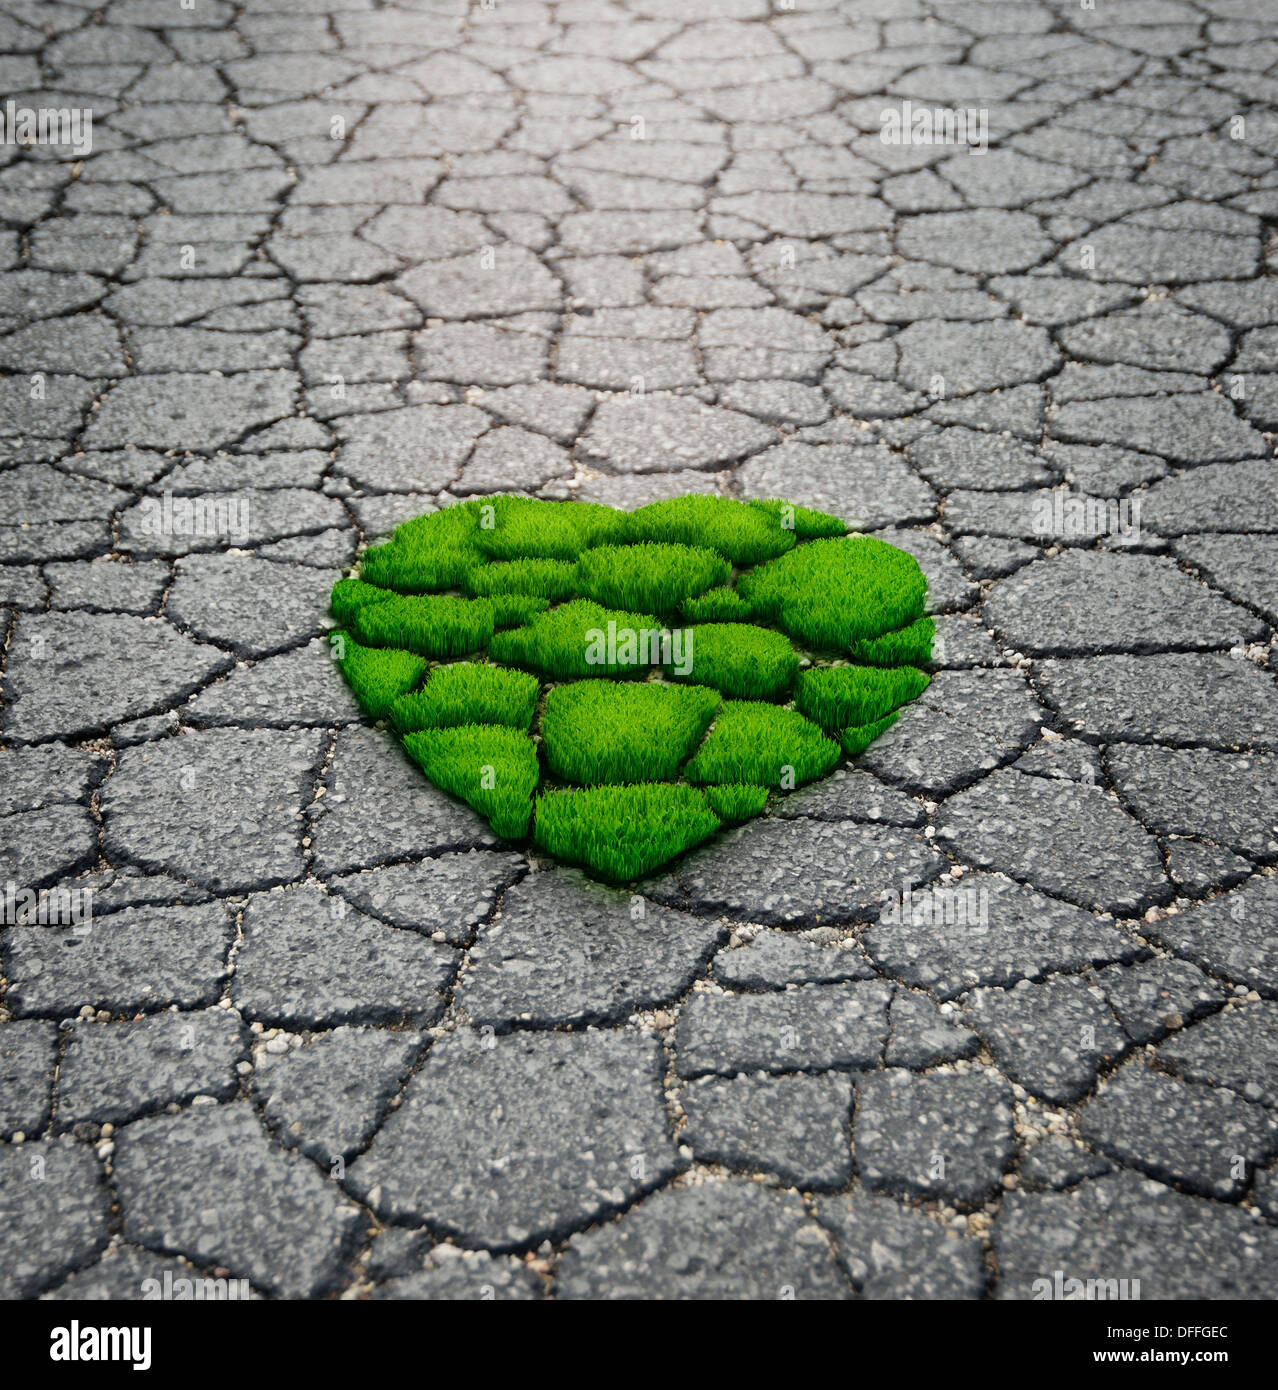 Heart Shape Grass Growing From The Asphalt - Stock Image